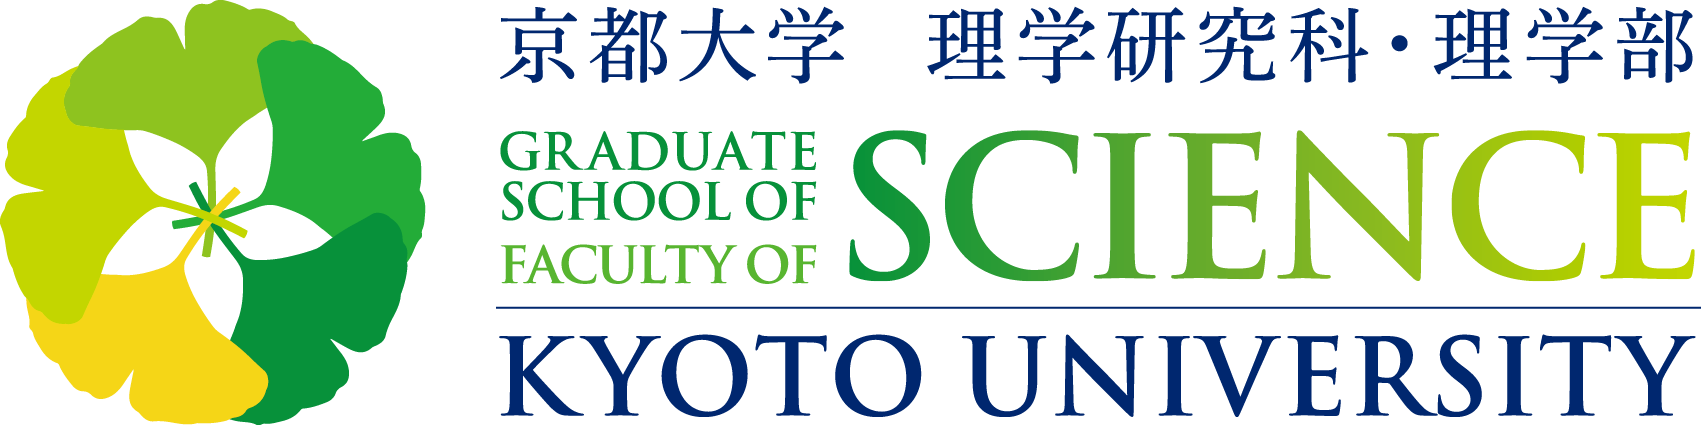 logo of School of Science